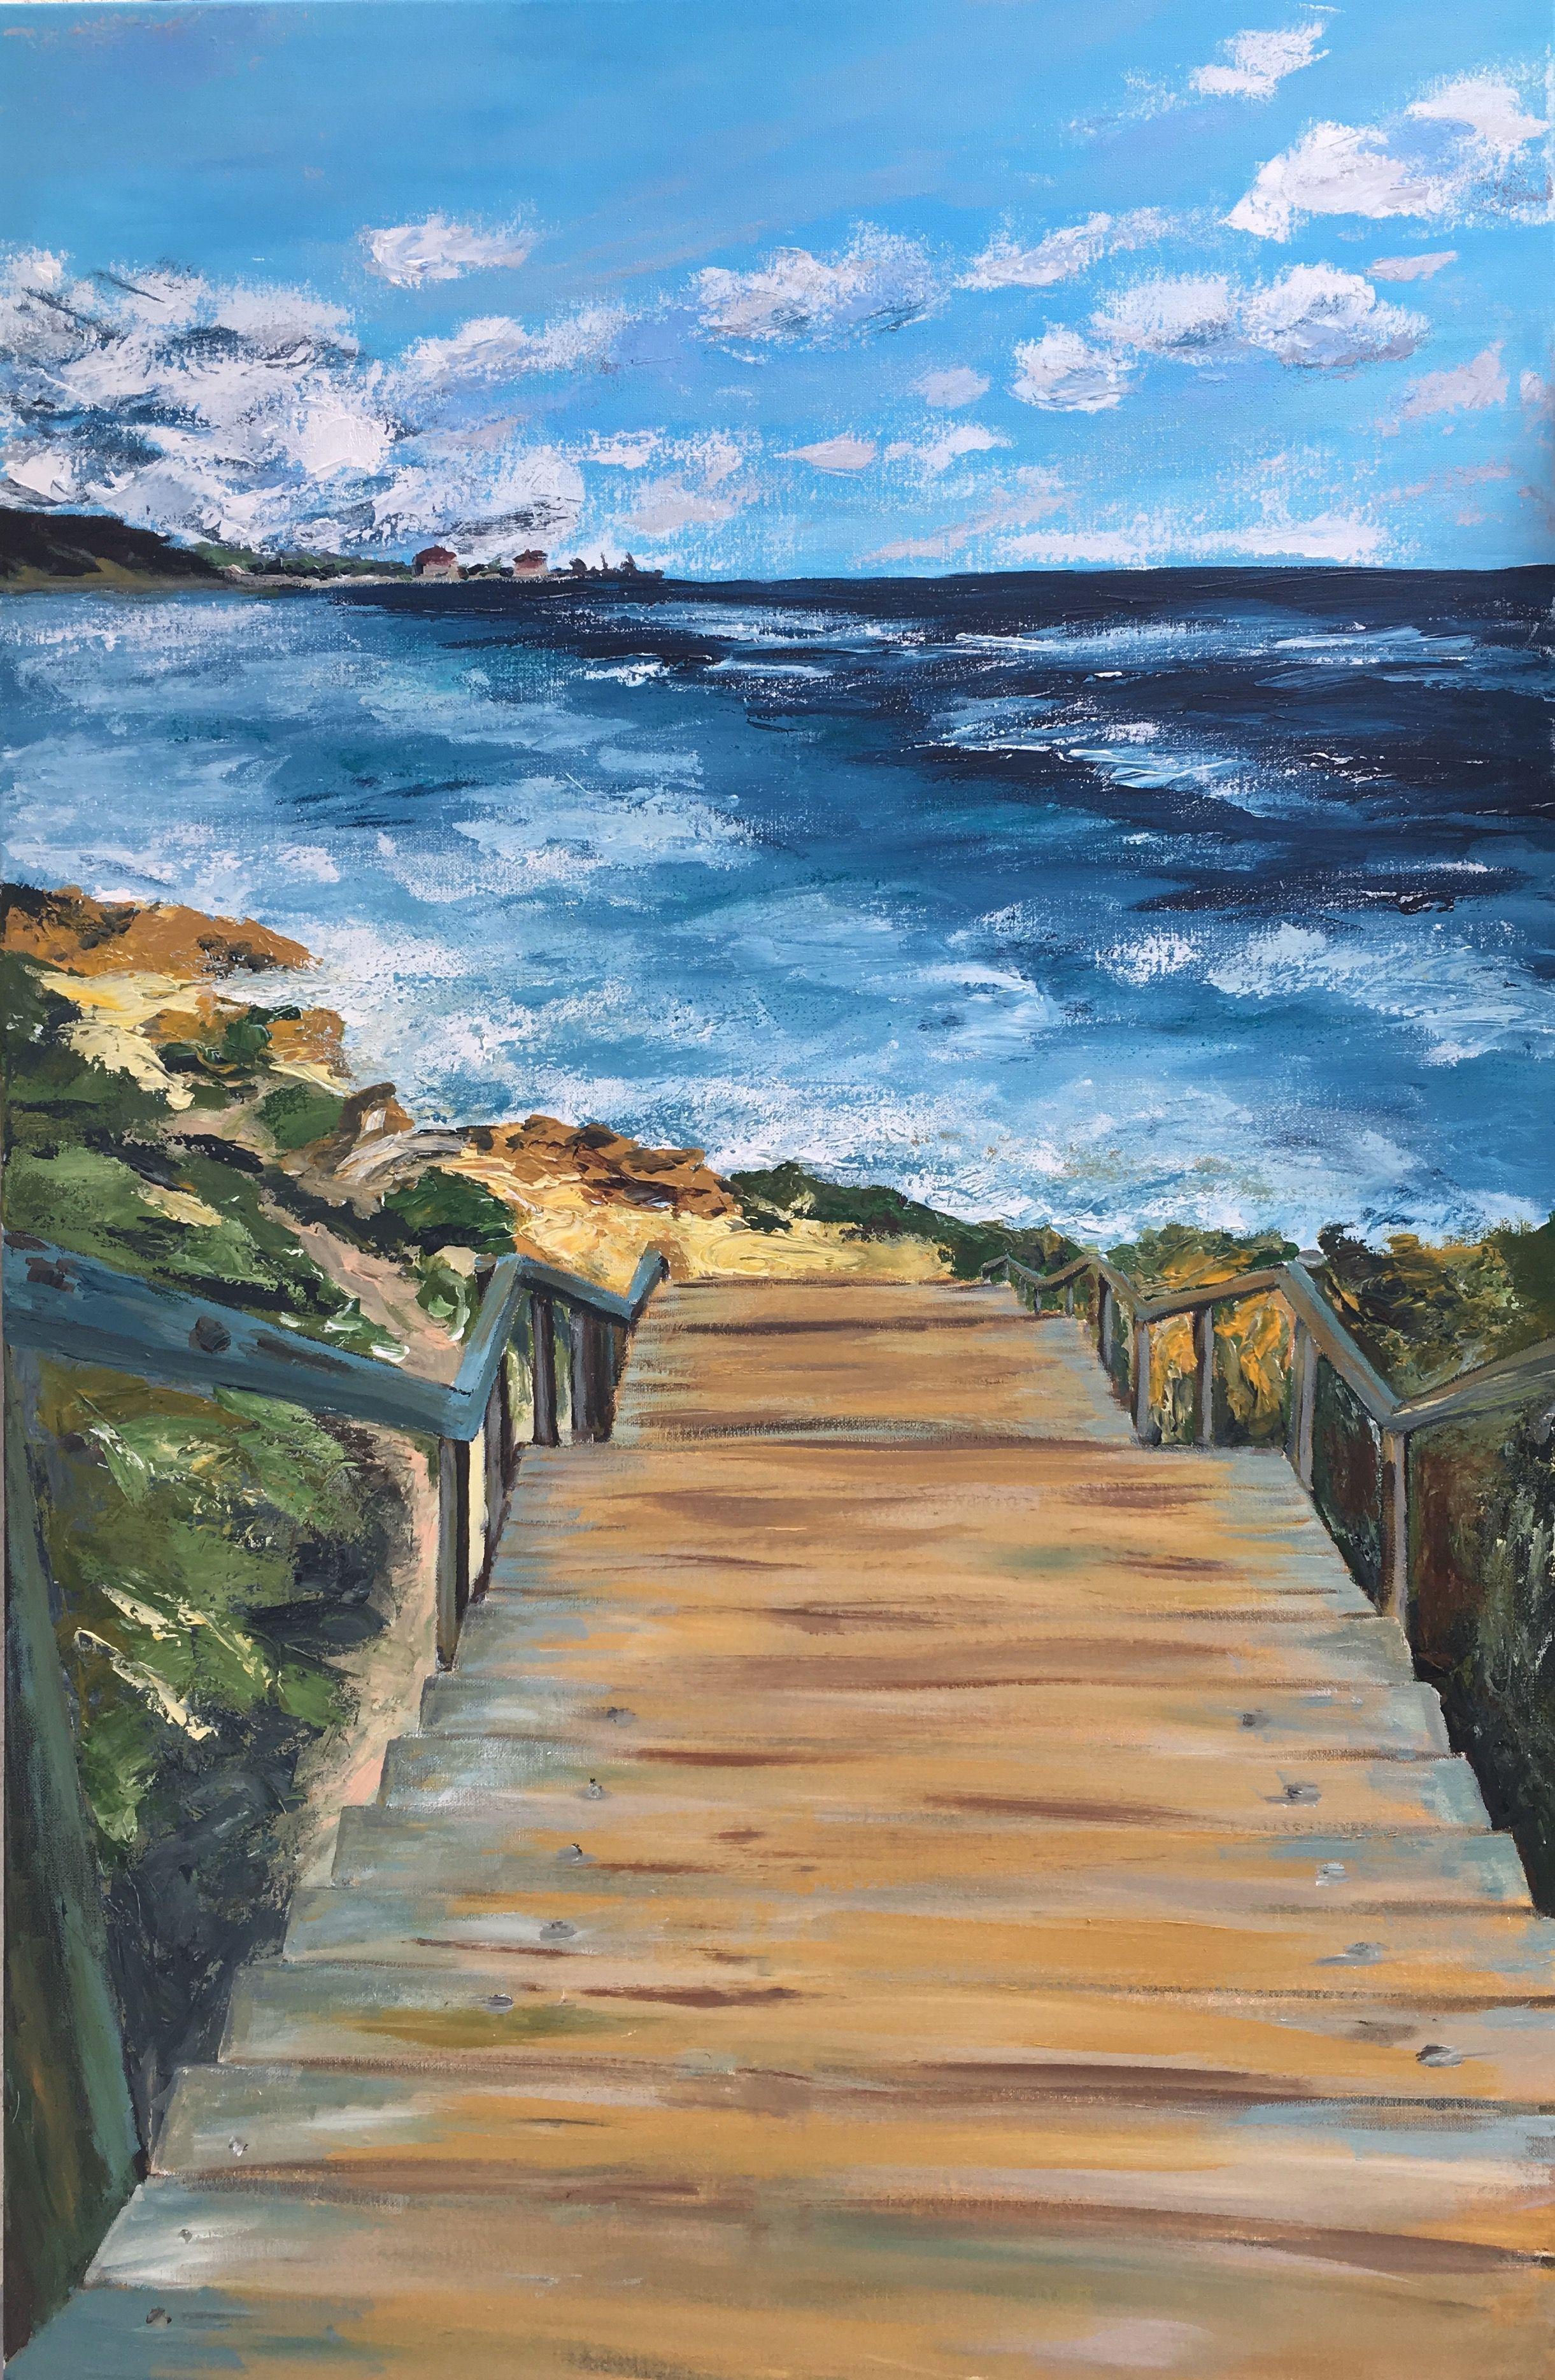 Stairway to sea. Acrylic canvas painting